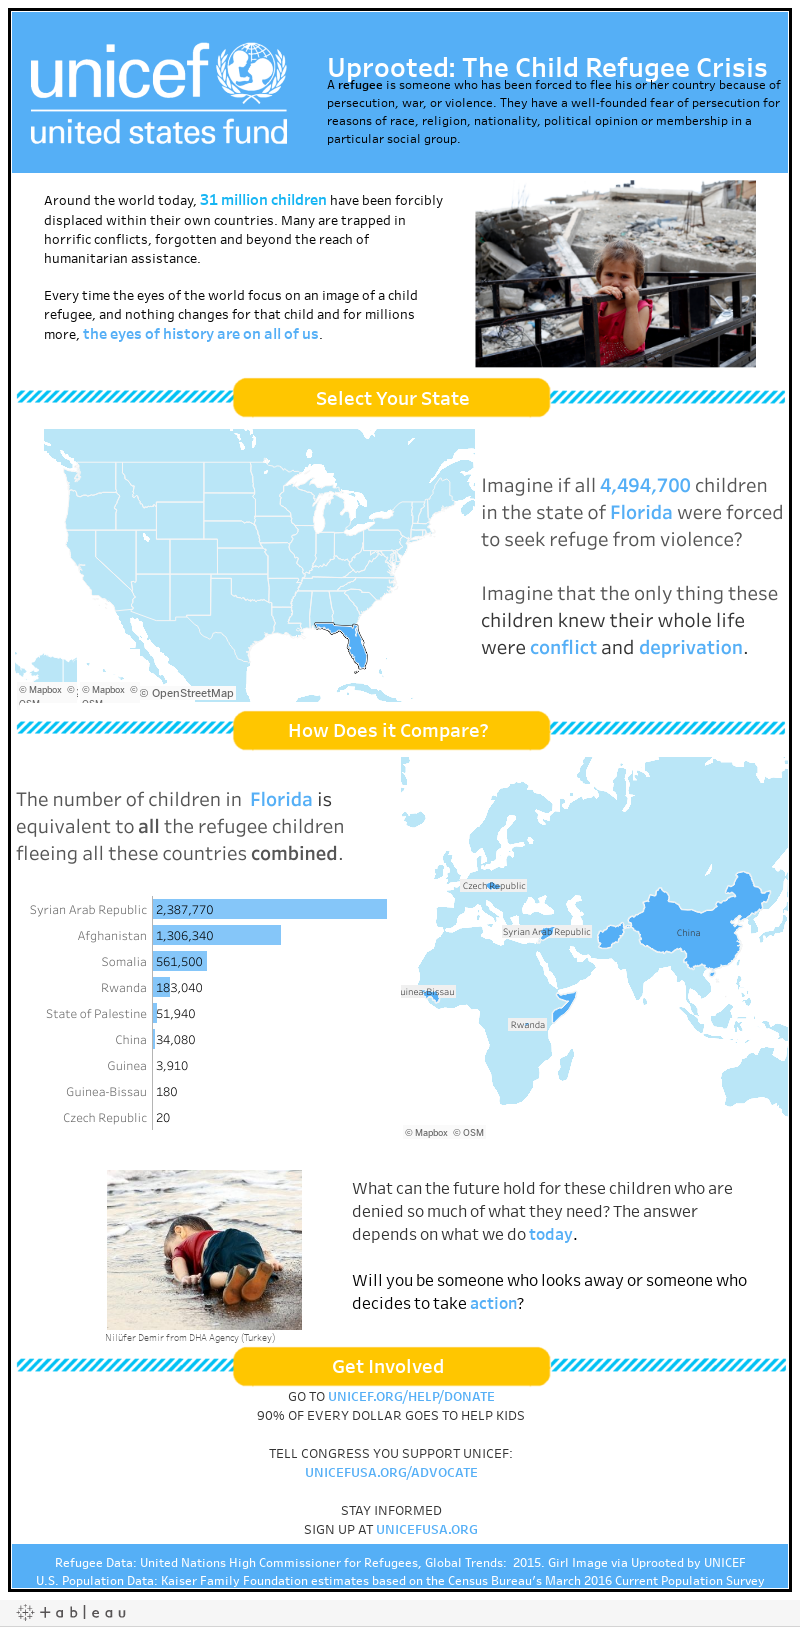 Uprooted: The Child Refugee Crisis